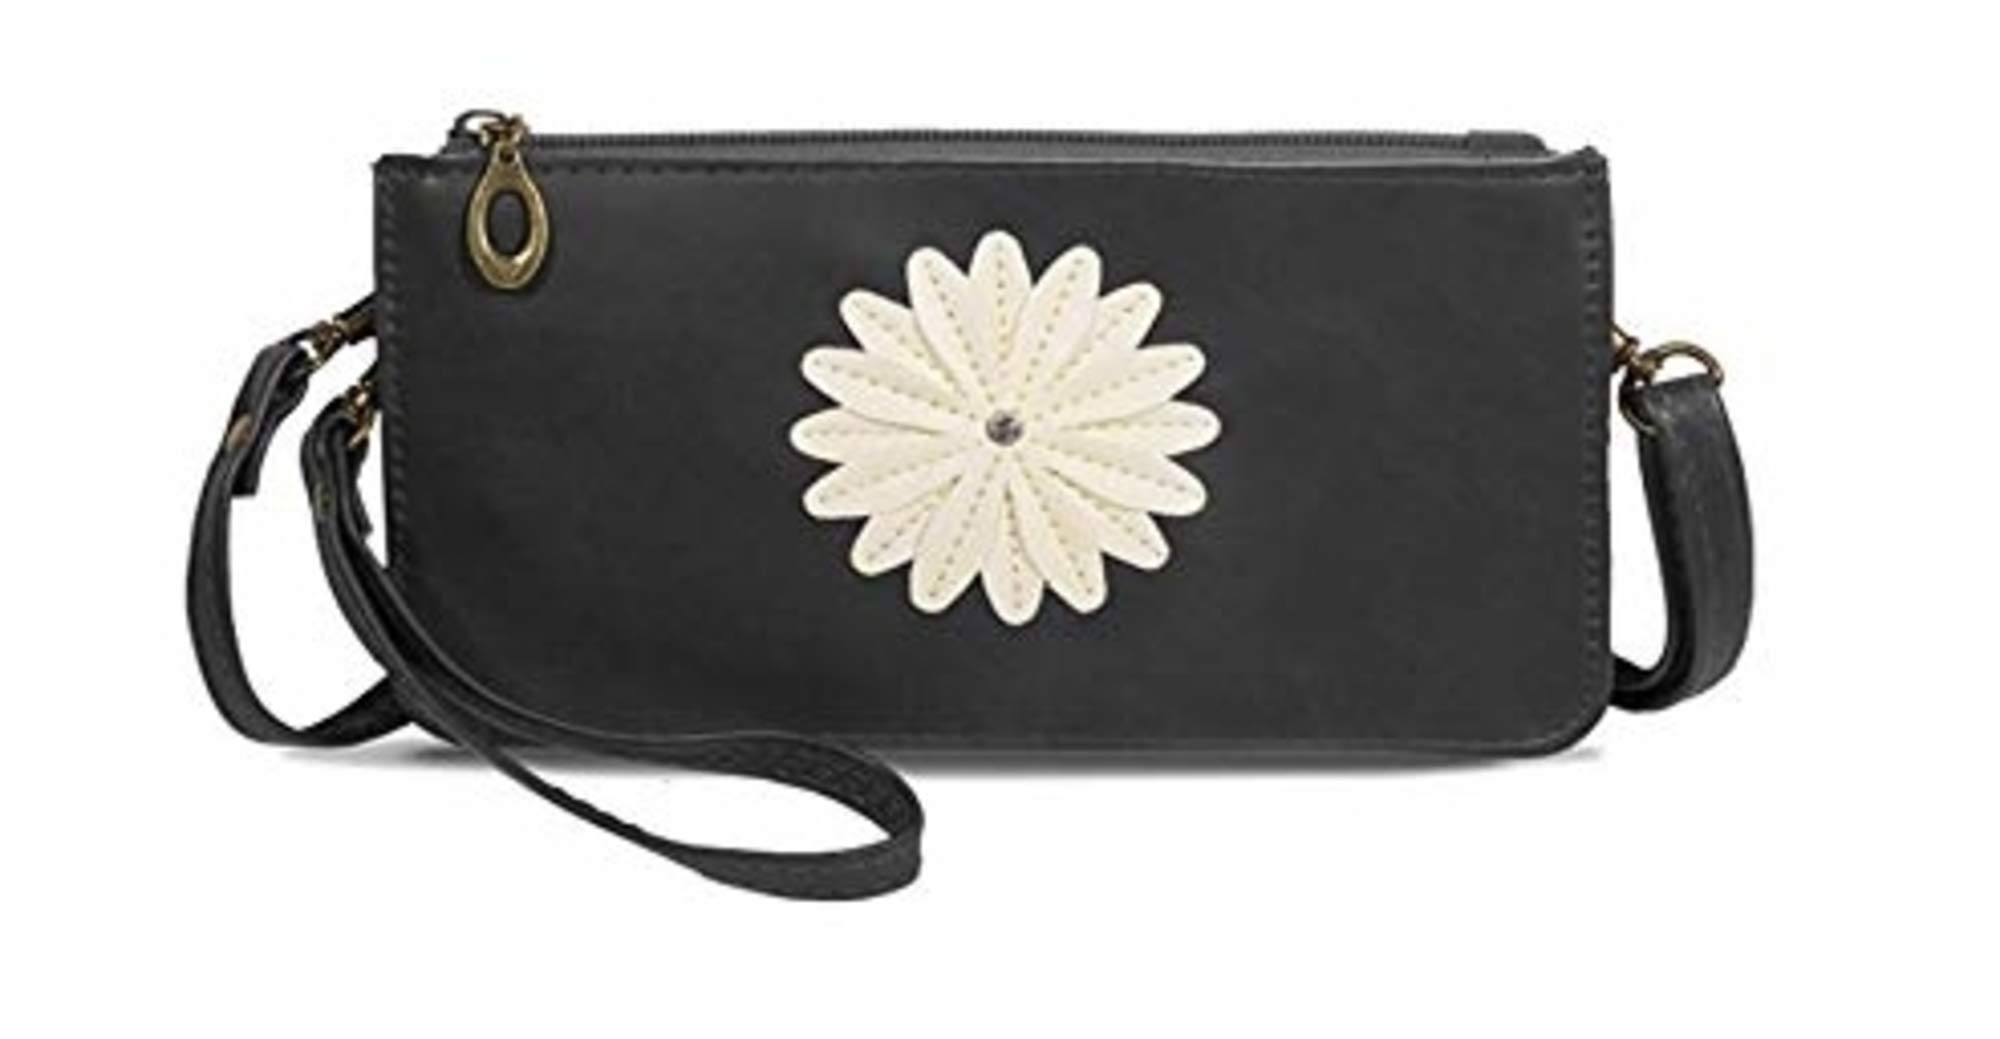 Traditional (Touch Screen) Cell Phone Purse with Zipper and two Pockets - Midnight Black by Save the Girls Touch Screen Purses (Image #1)